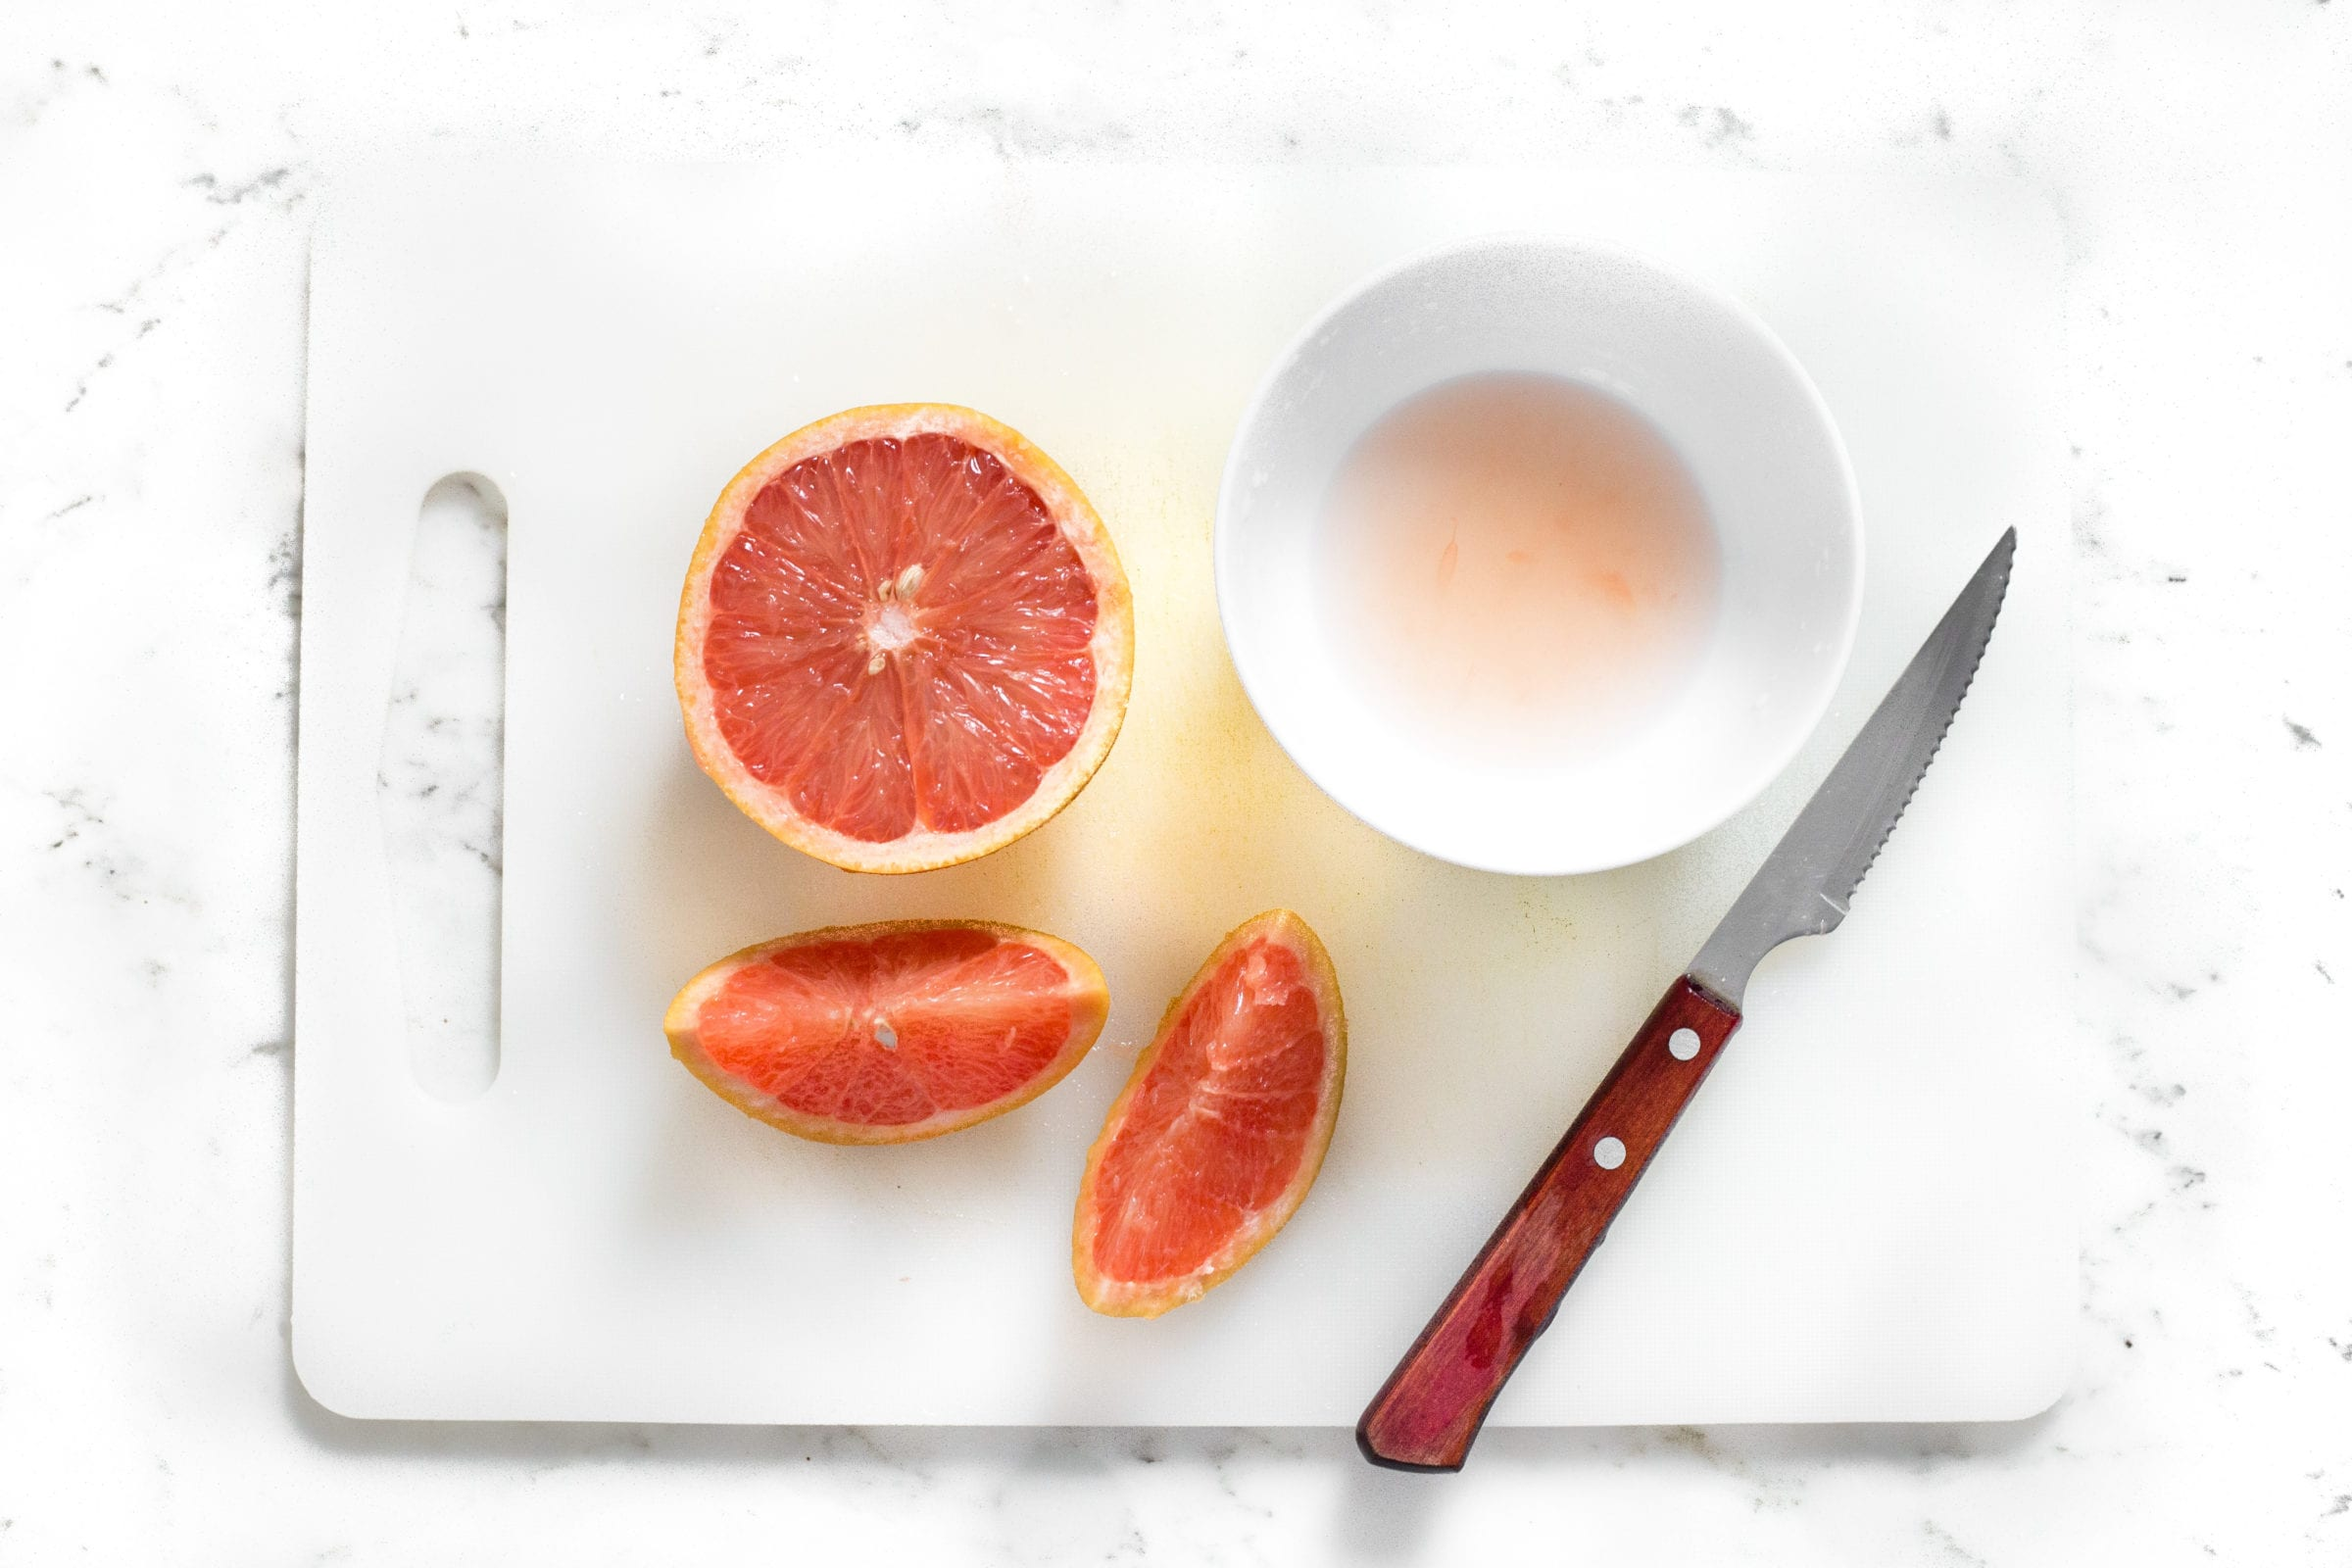 image of cut grapefruit on cutting board